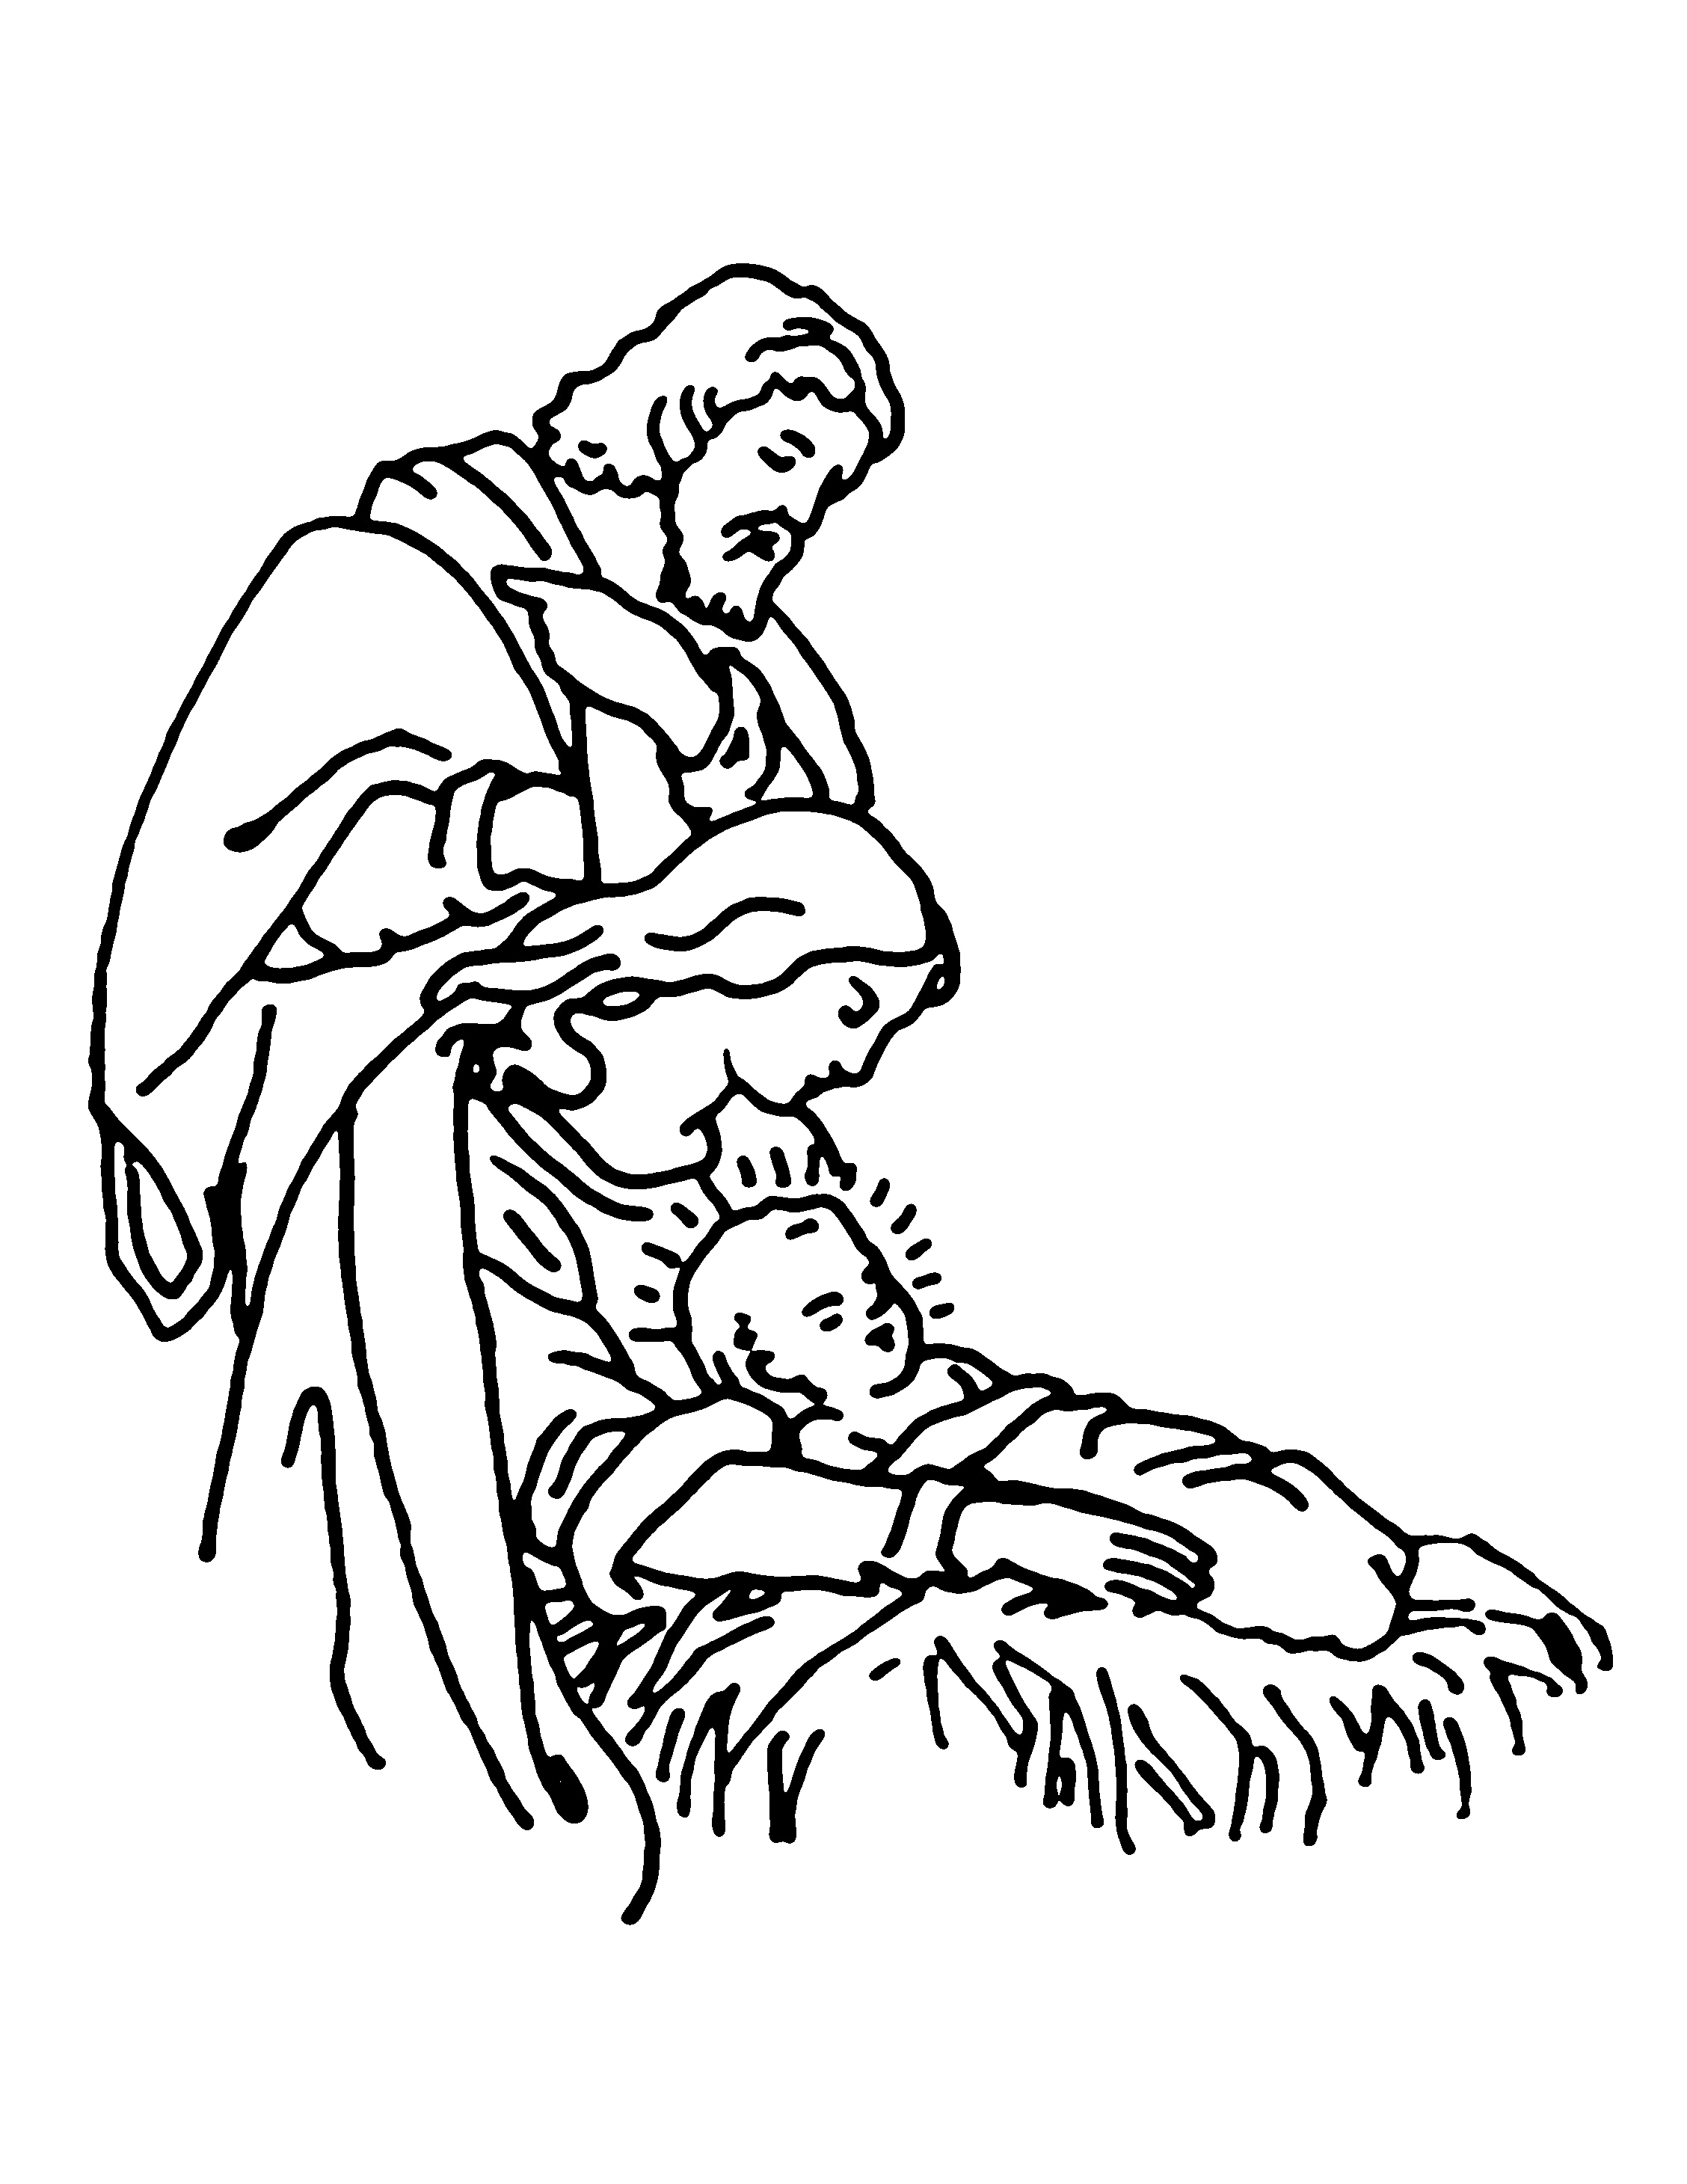 Line drawing of the Nativity showing Joseph, Mary and the baby Jesus.